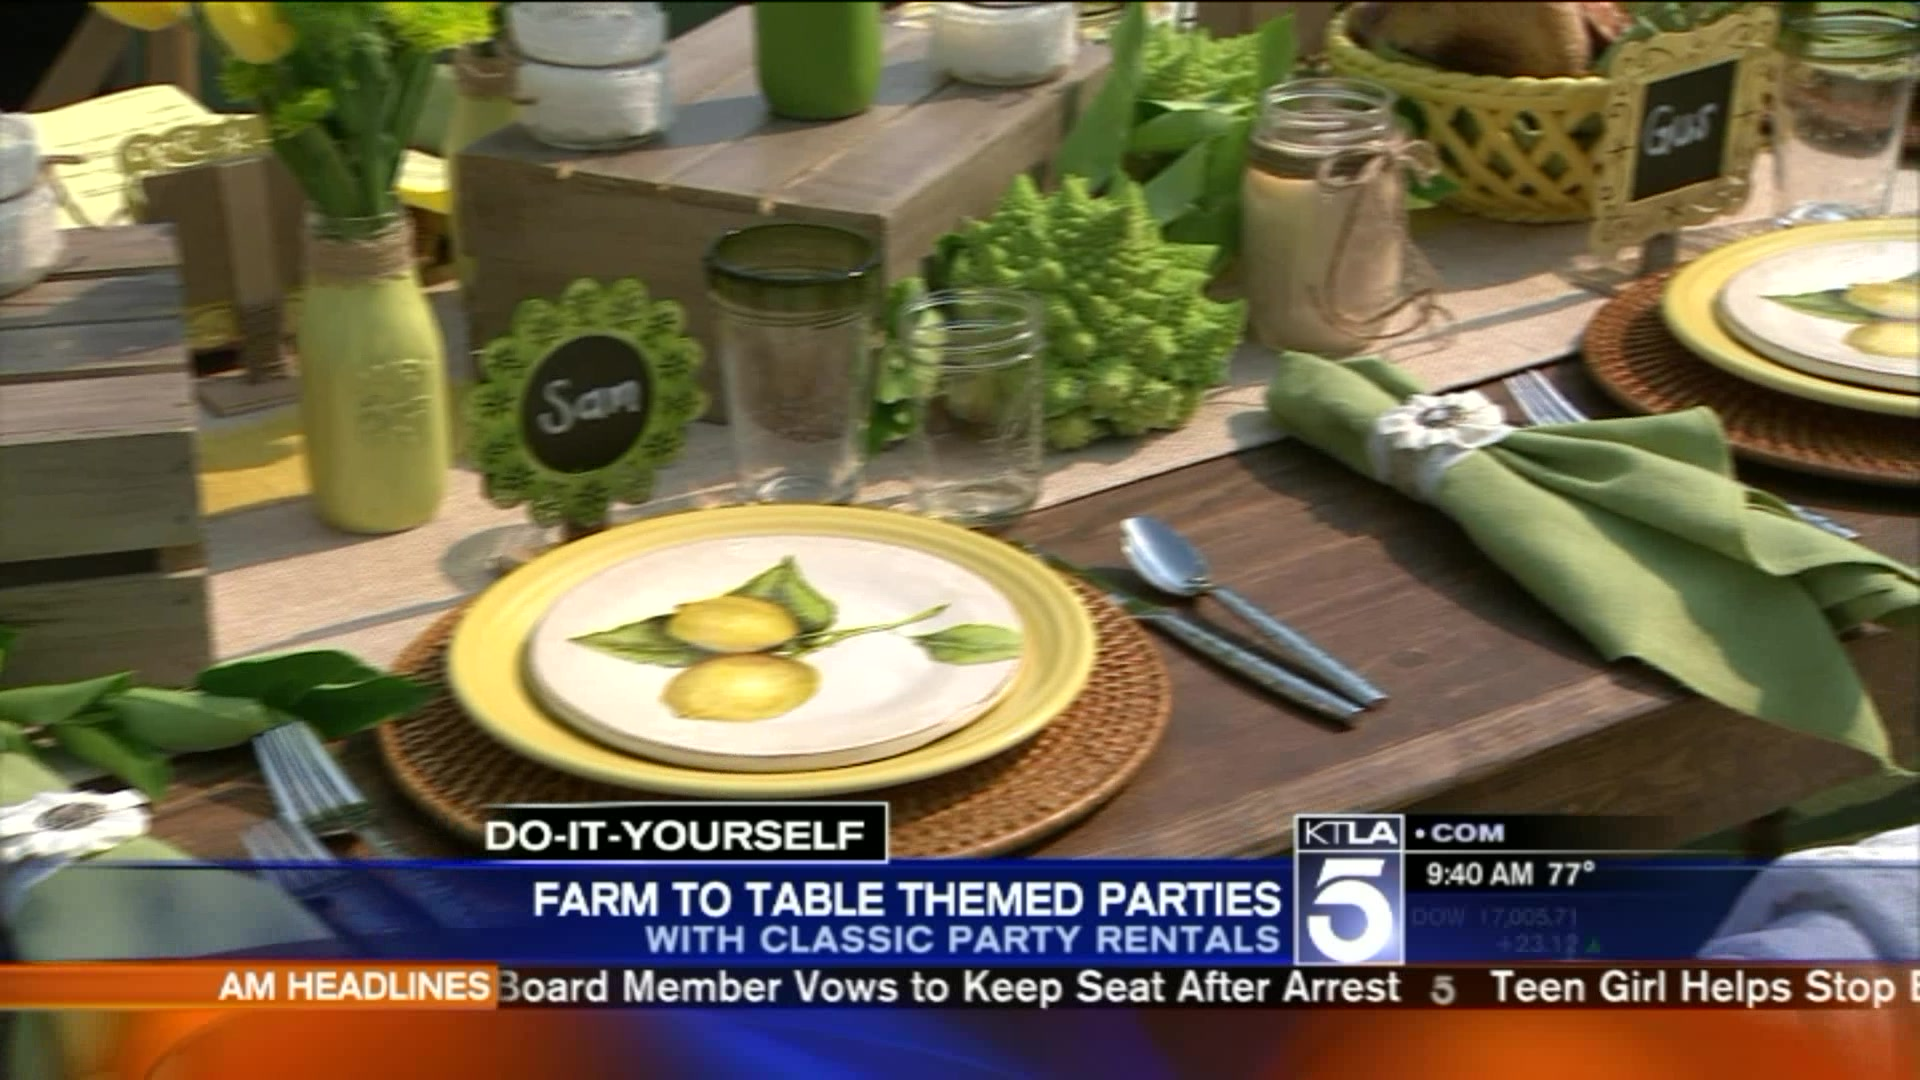 Summer Trends: How To Host Your Own Farm-To-Table Party